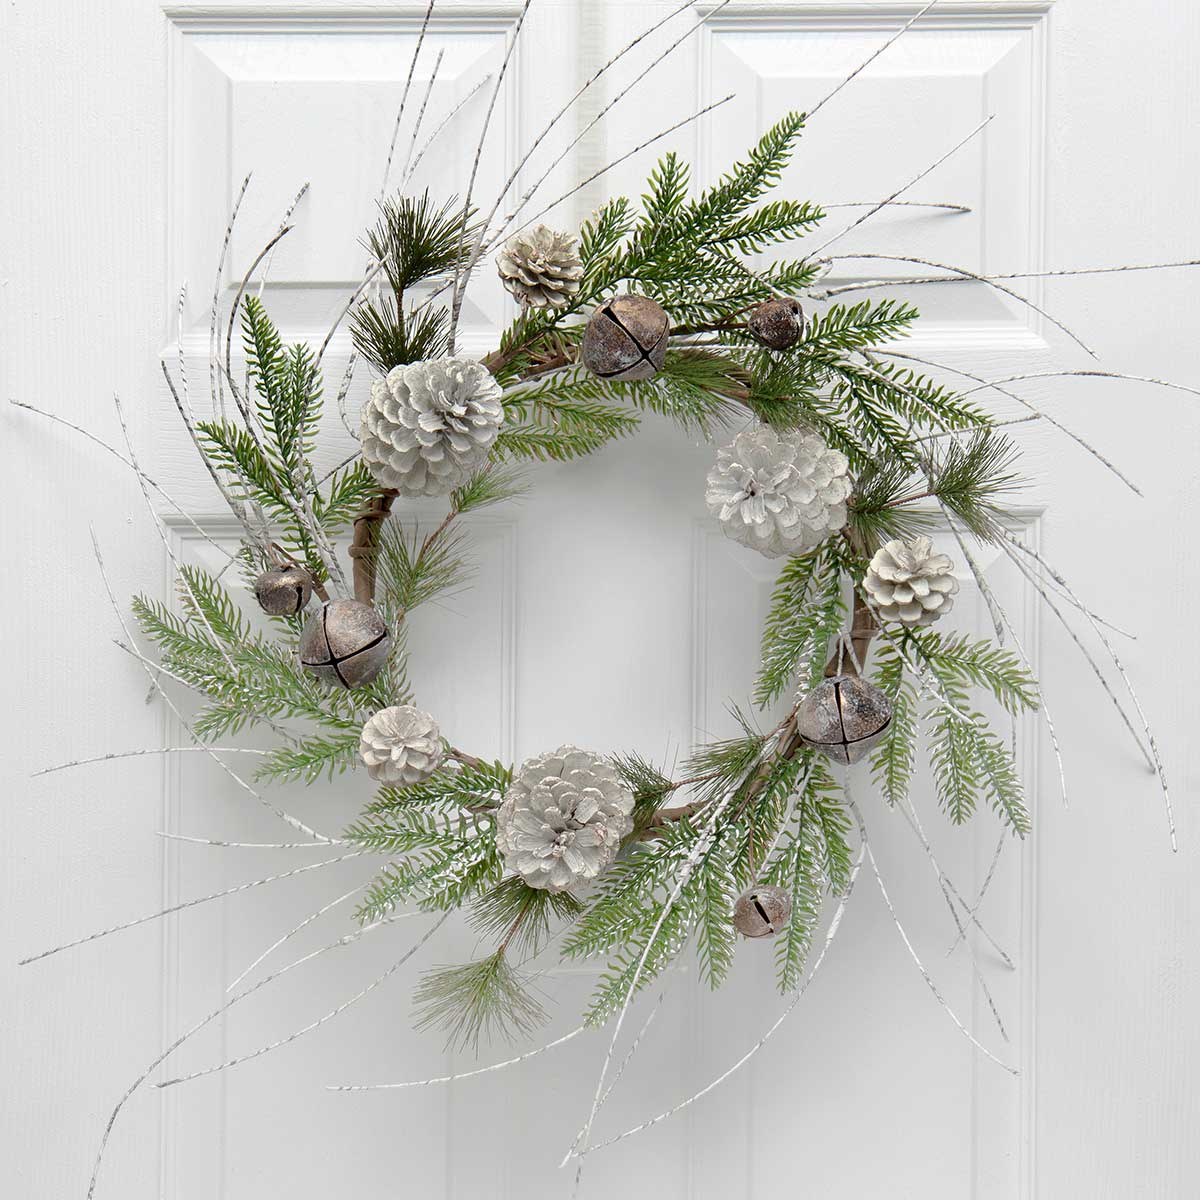 BIRCH & PINE WREATH WITH JINGLE